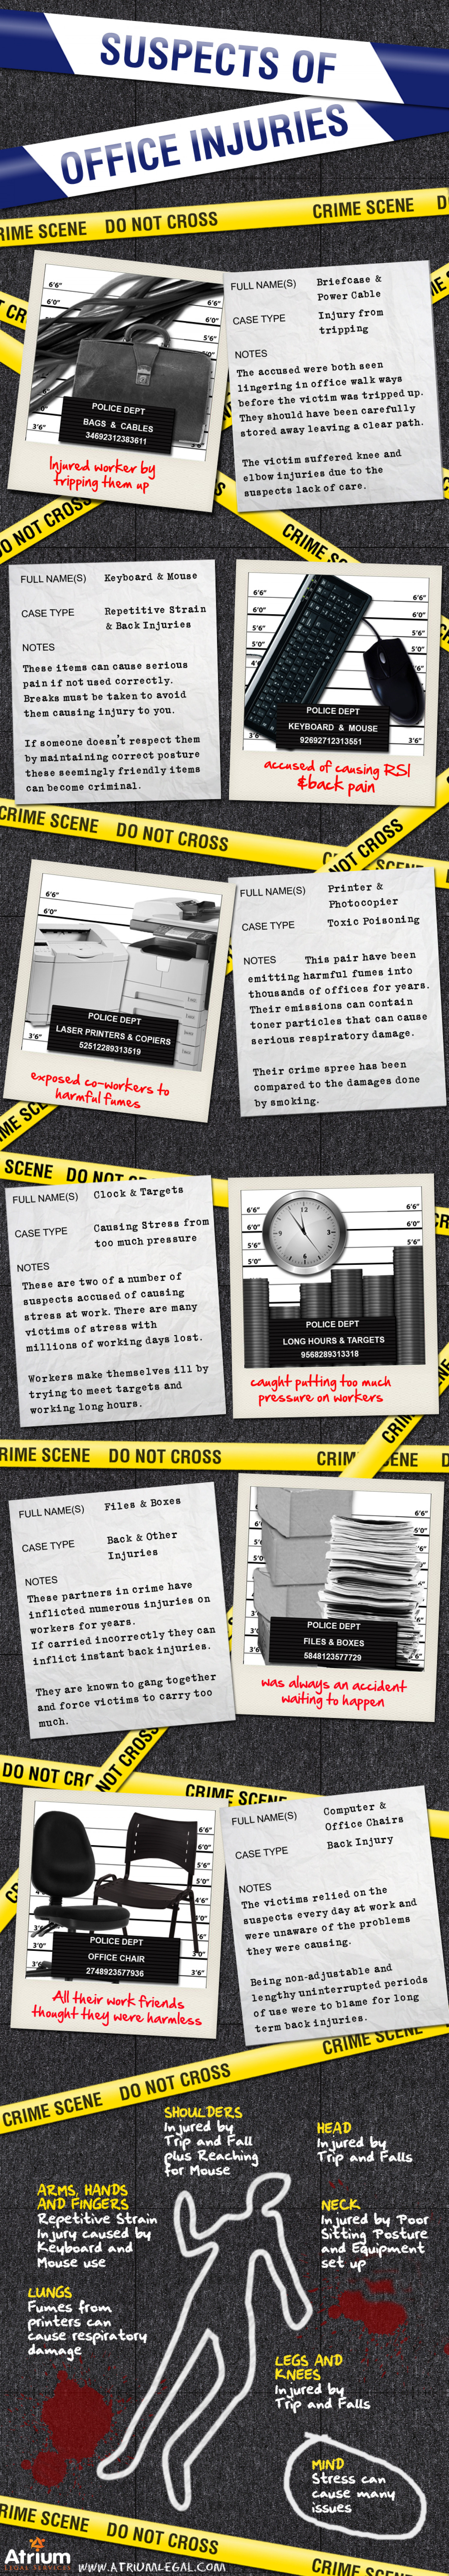 Suspects of Office Injuries Infographic